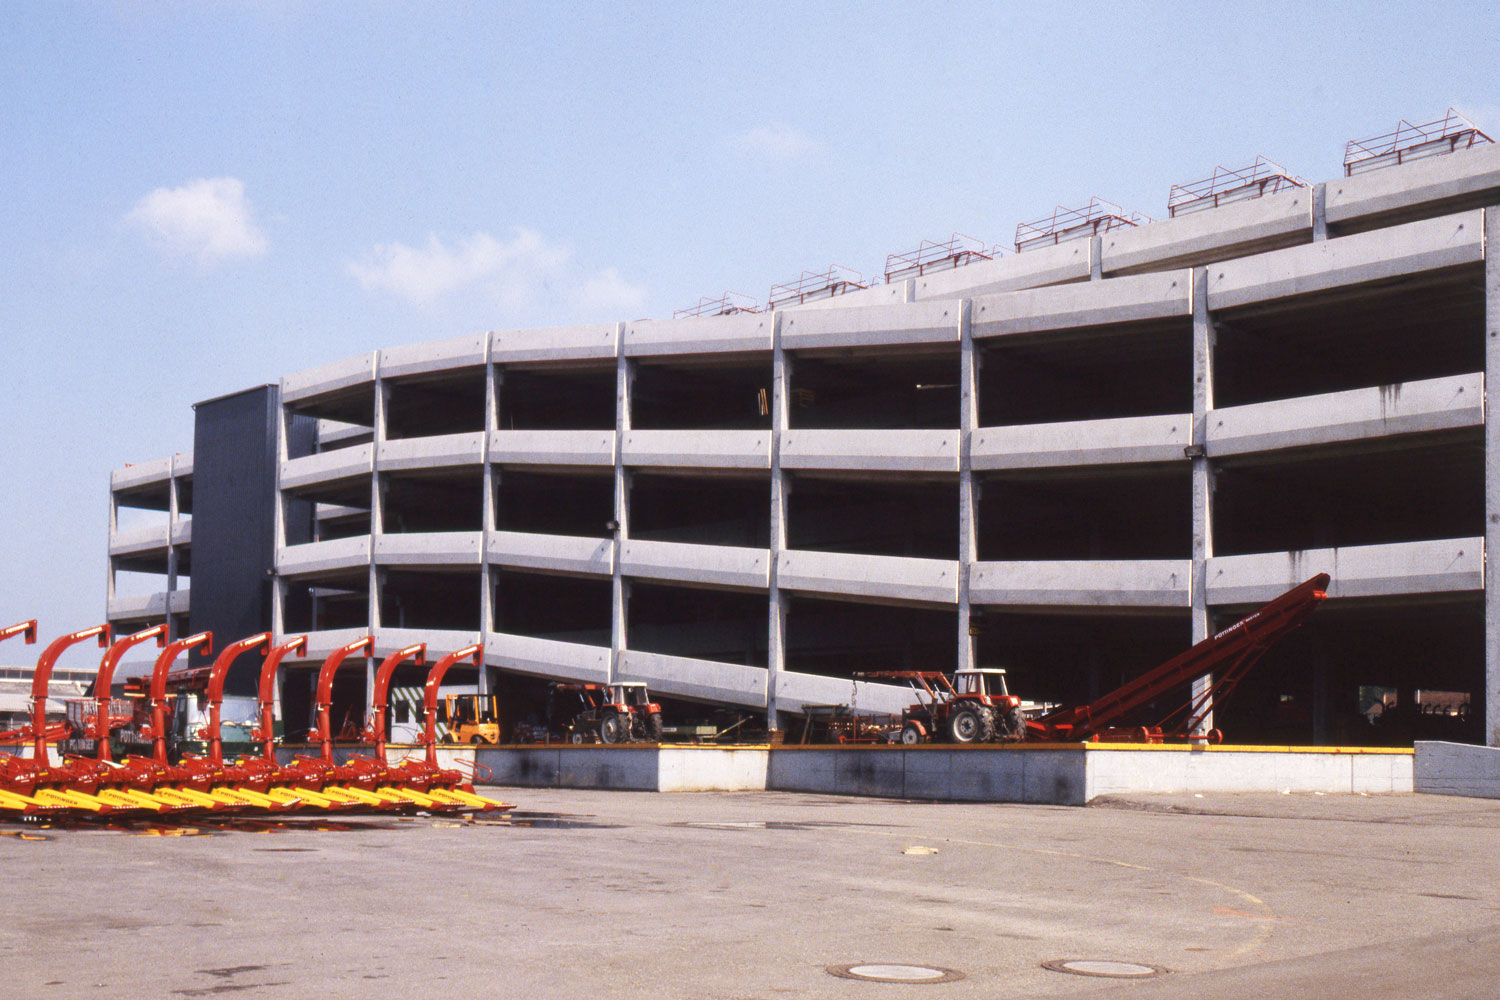 Could easily be mistaken for a multi-storey car park: The storage hall opened in 1977.